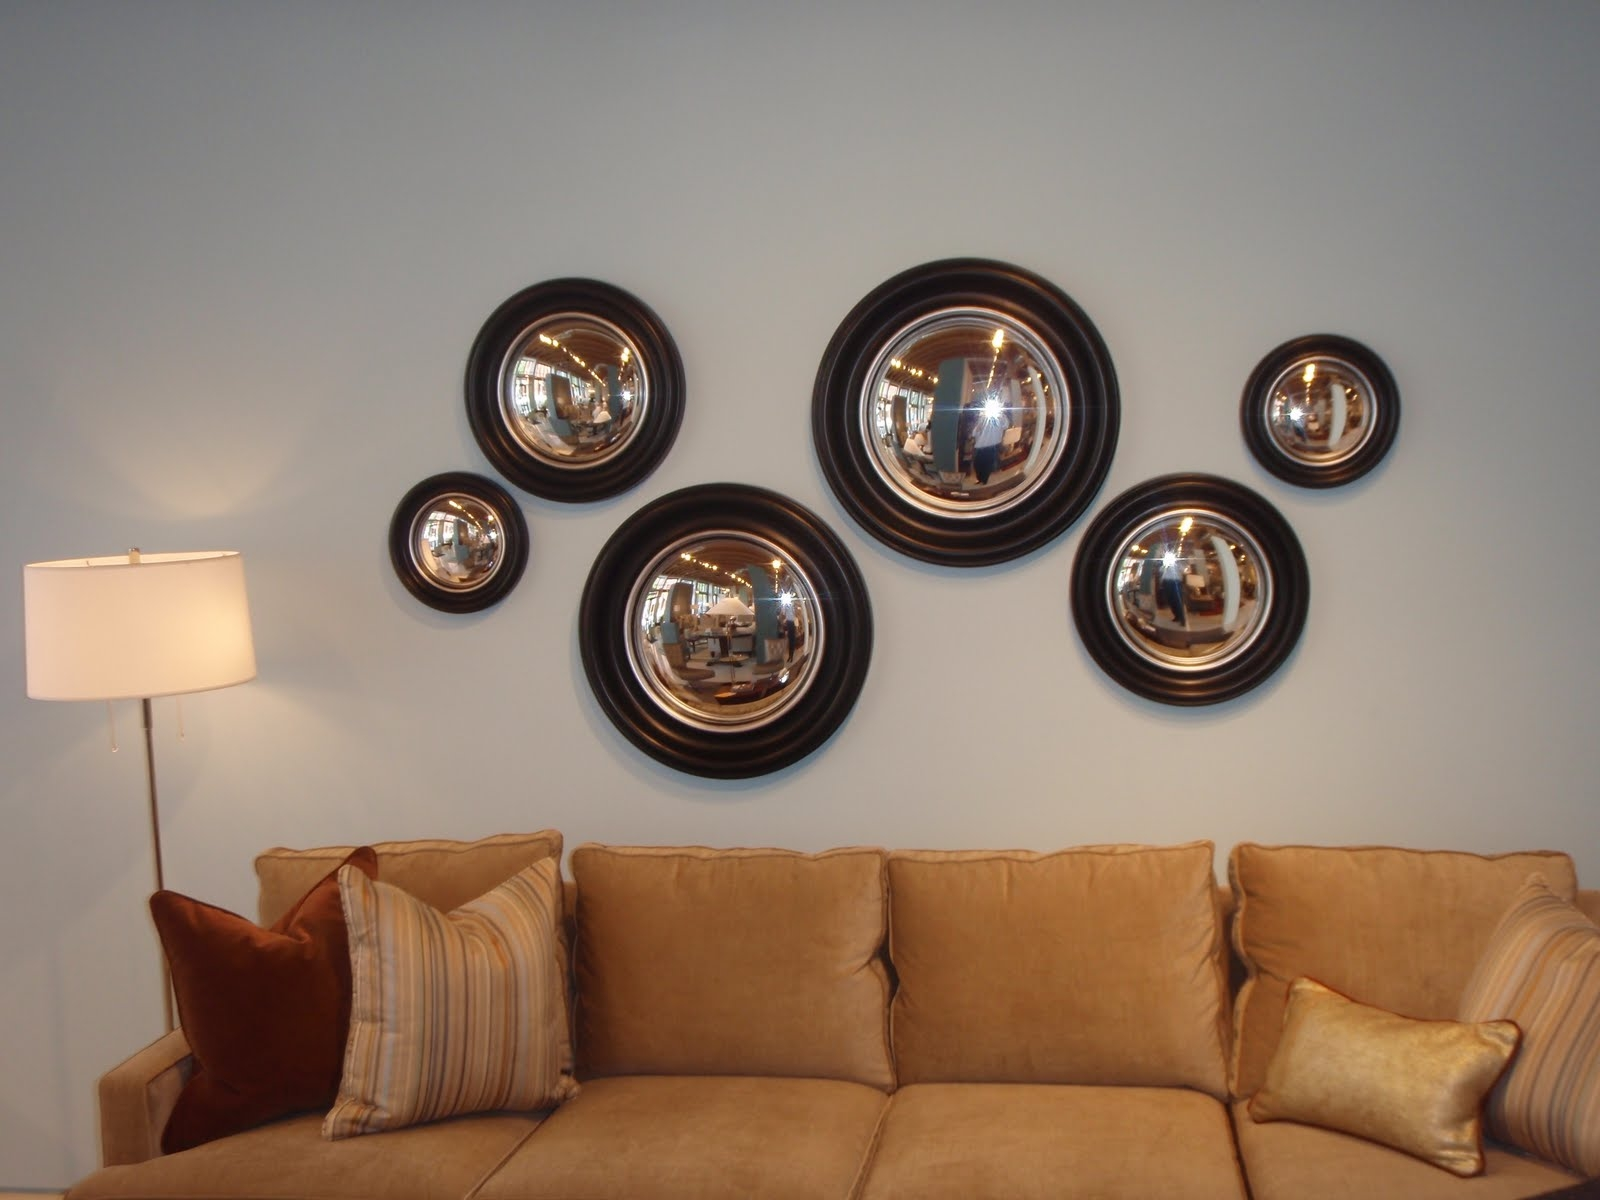 Decorative Convex Mirror Photos Regarding Decorative Convex Mirror (Image 8 of 15)